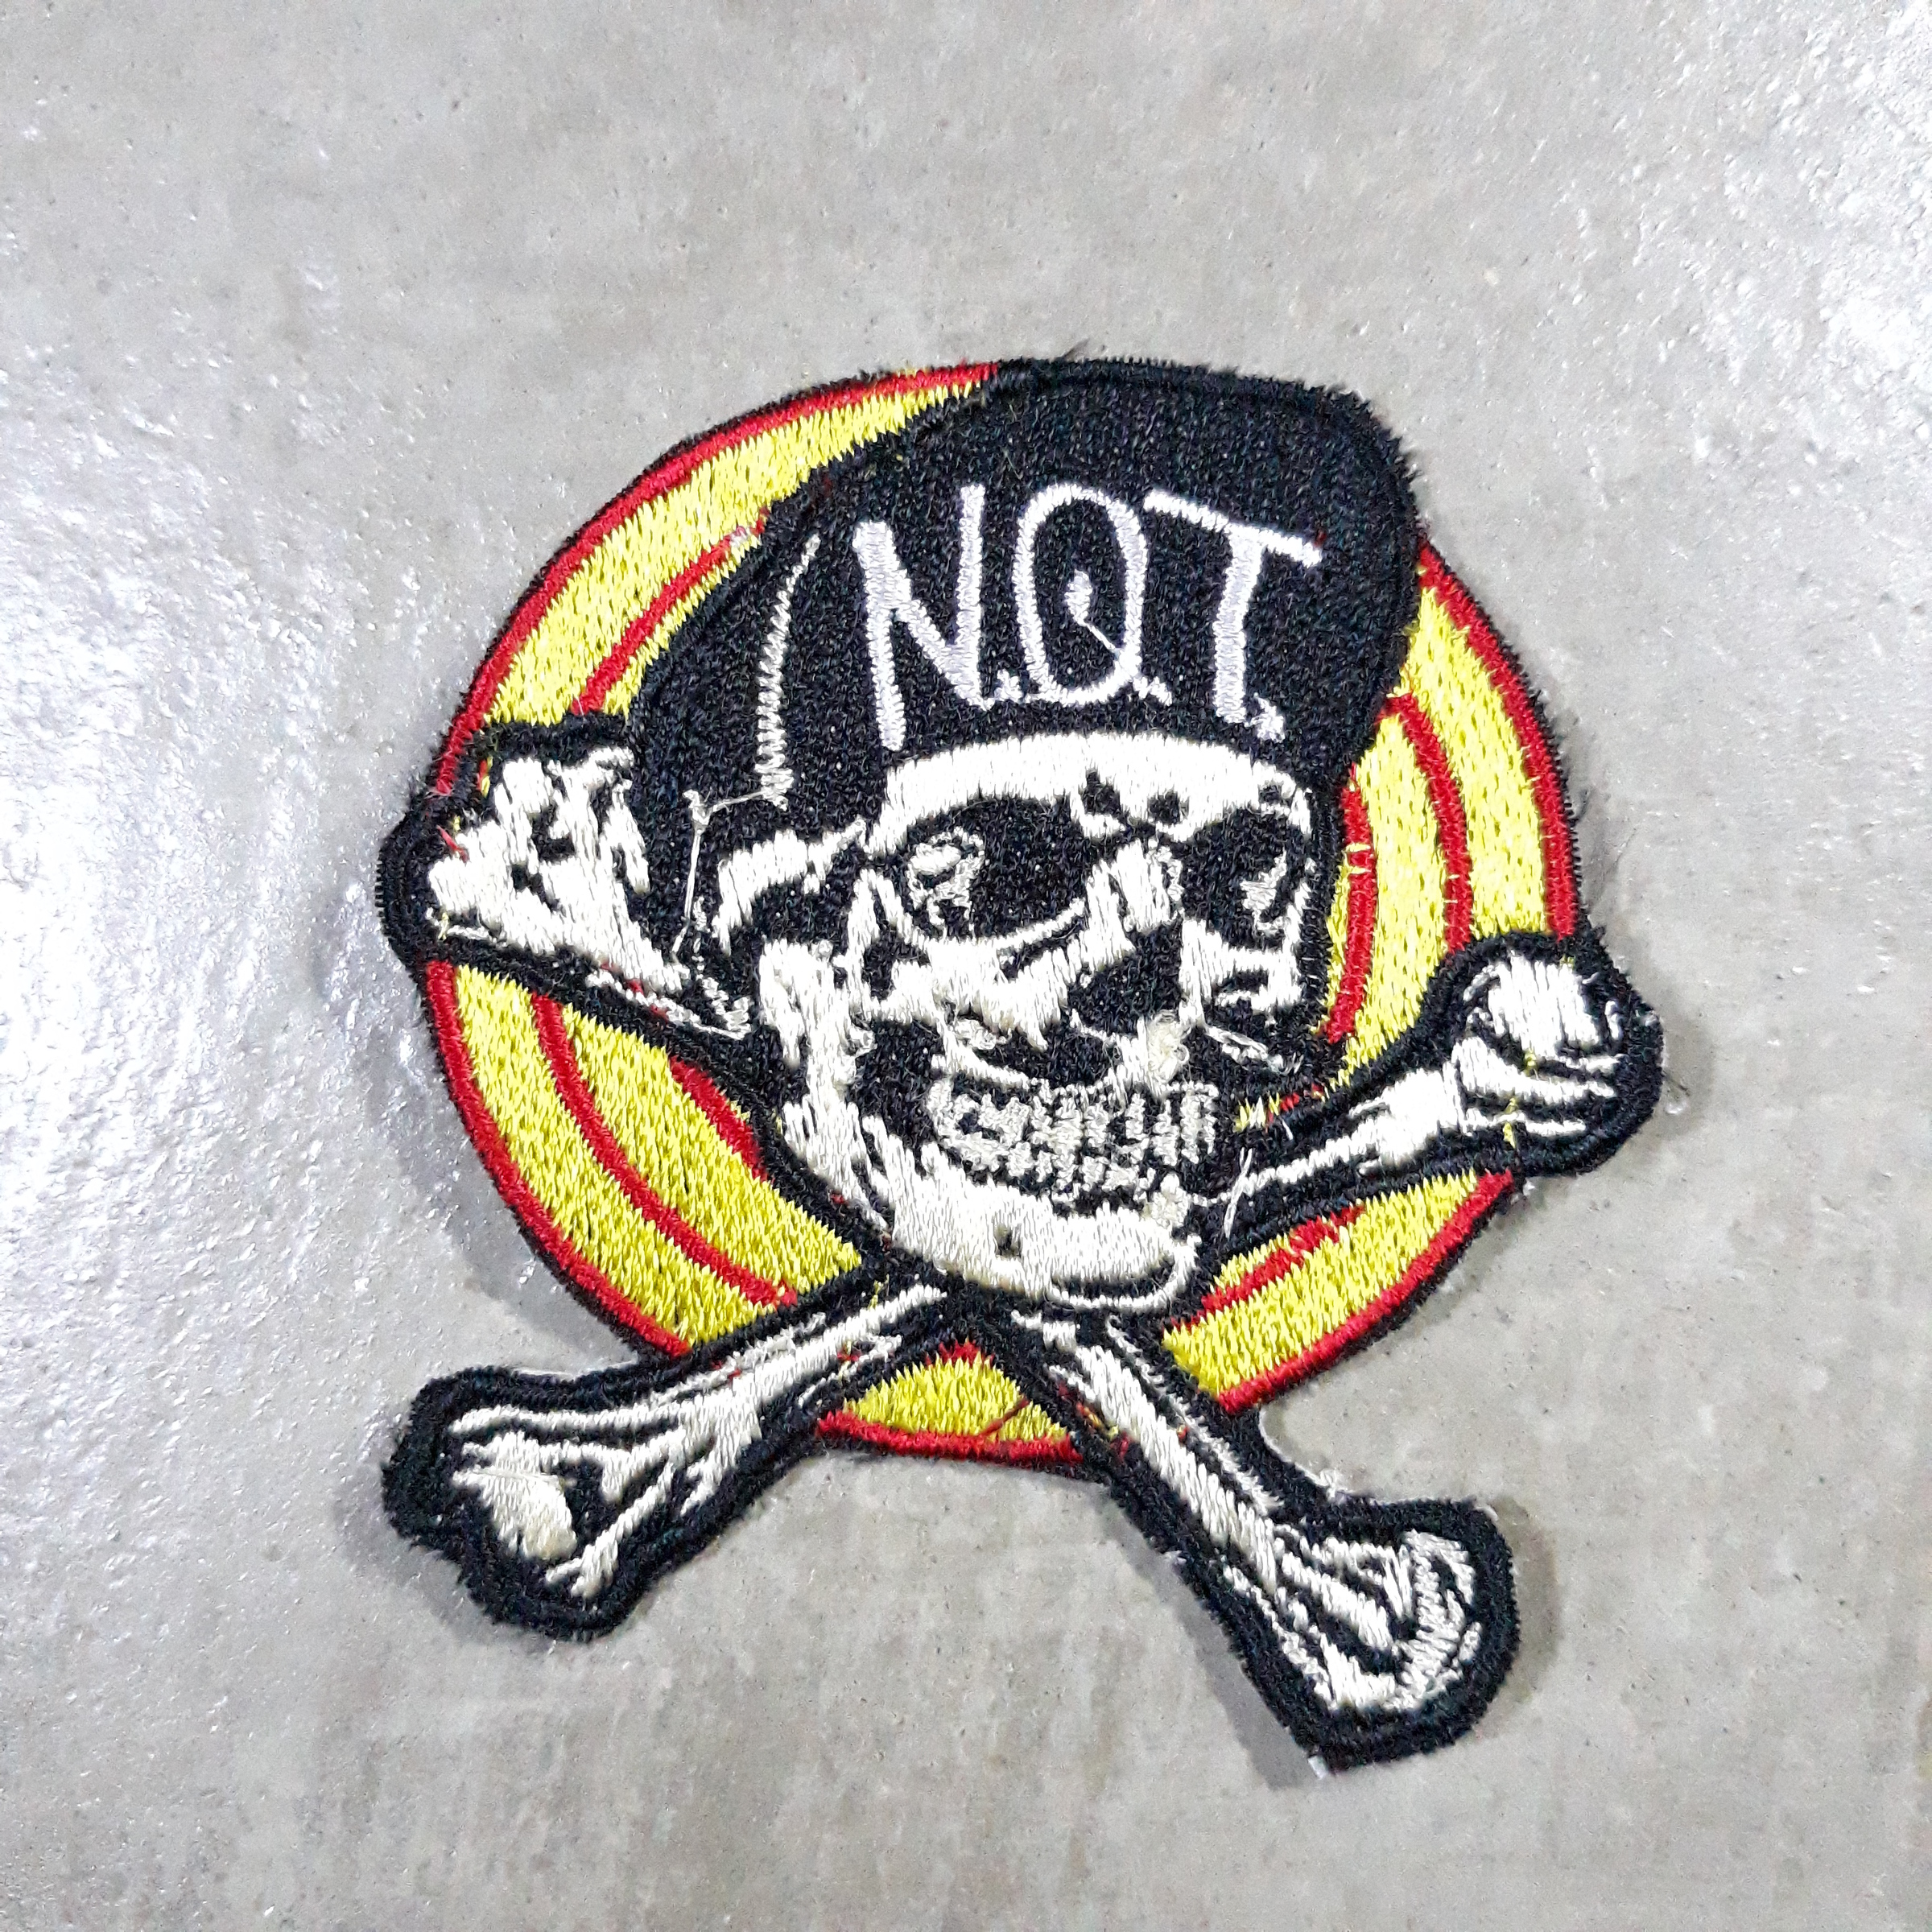 Anthrax-NOT skull.jpg